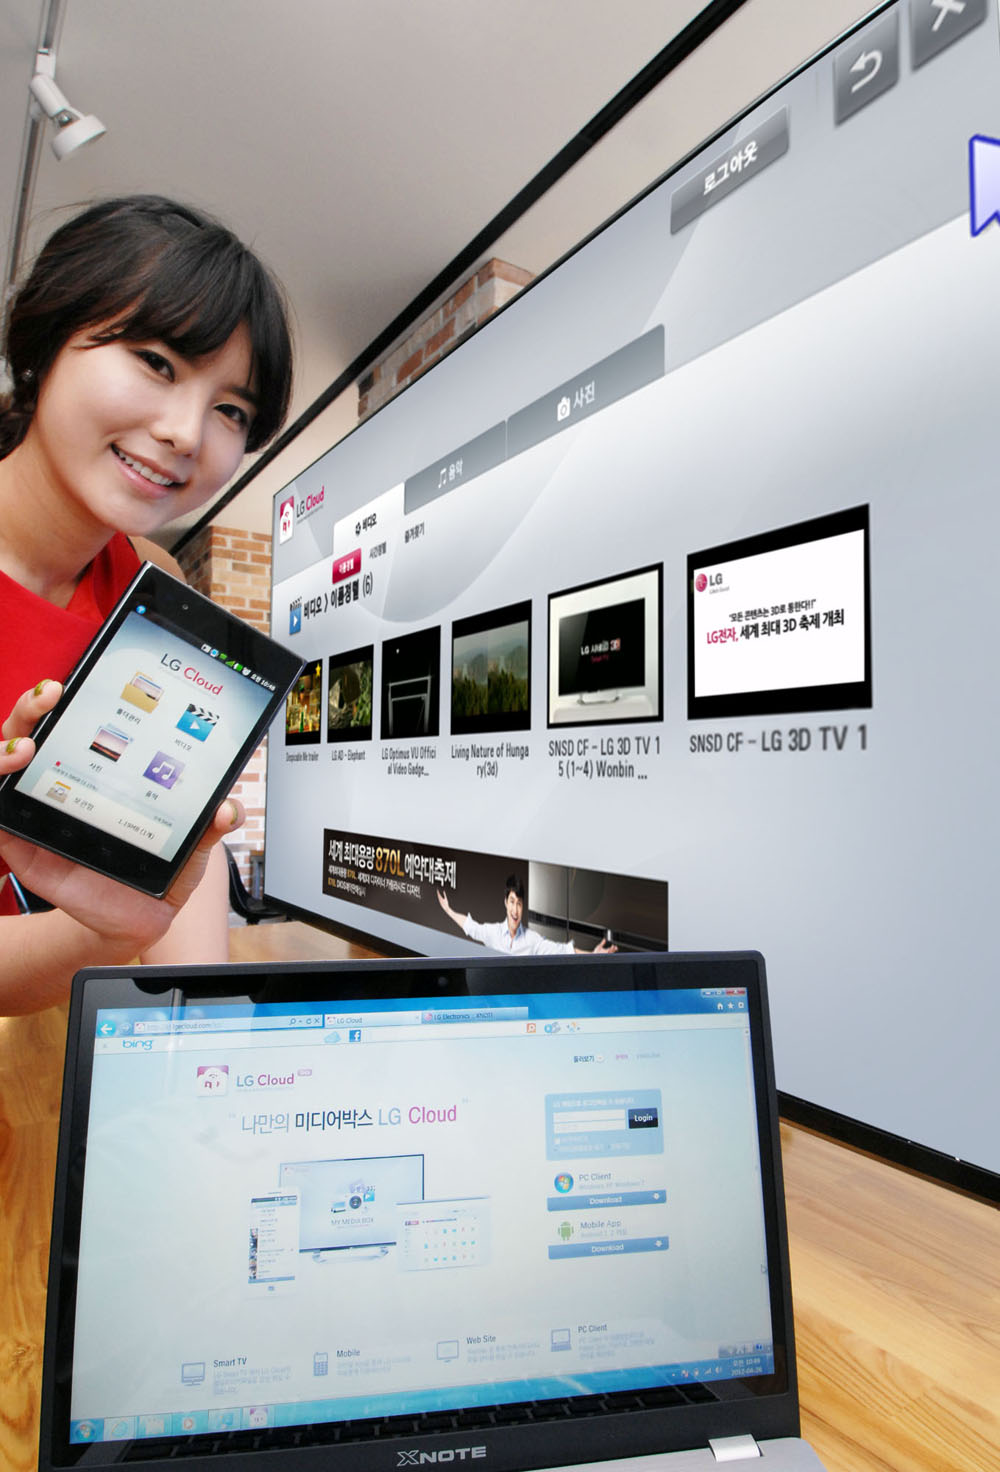 A female model holds up a phone displaying LG Cloud, the company's multimedia cloud platform on the screen while LG's XNote mirrors the phone's screen.